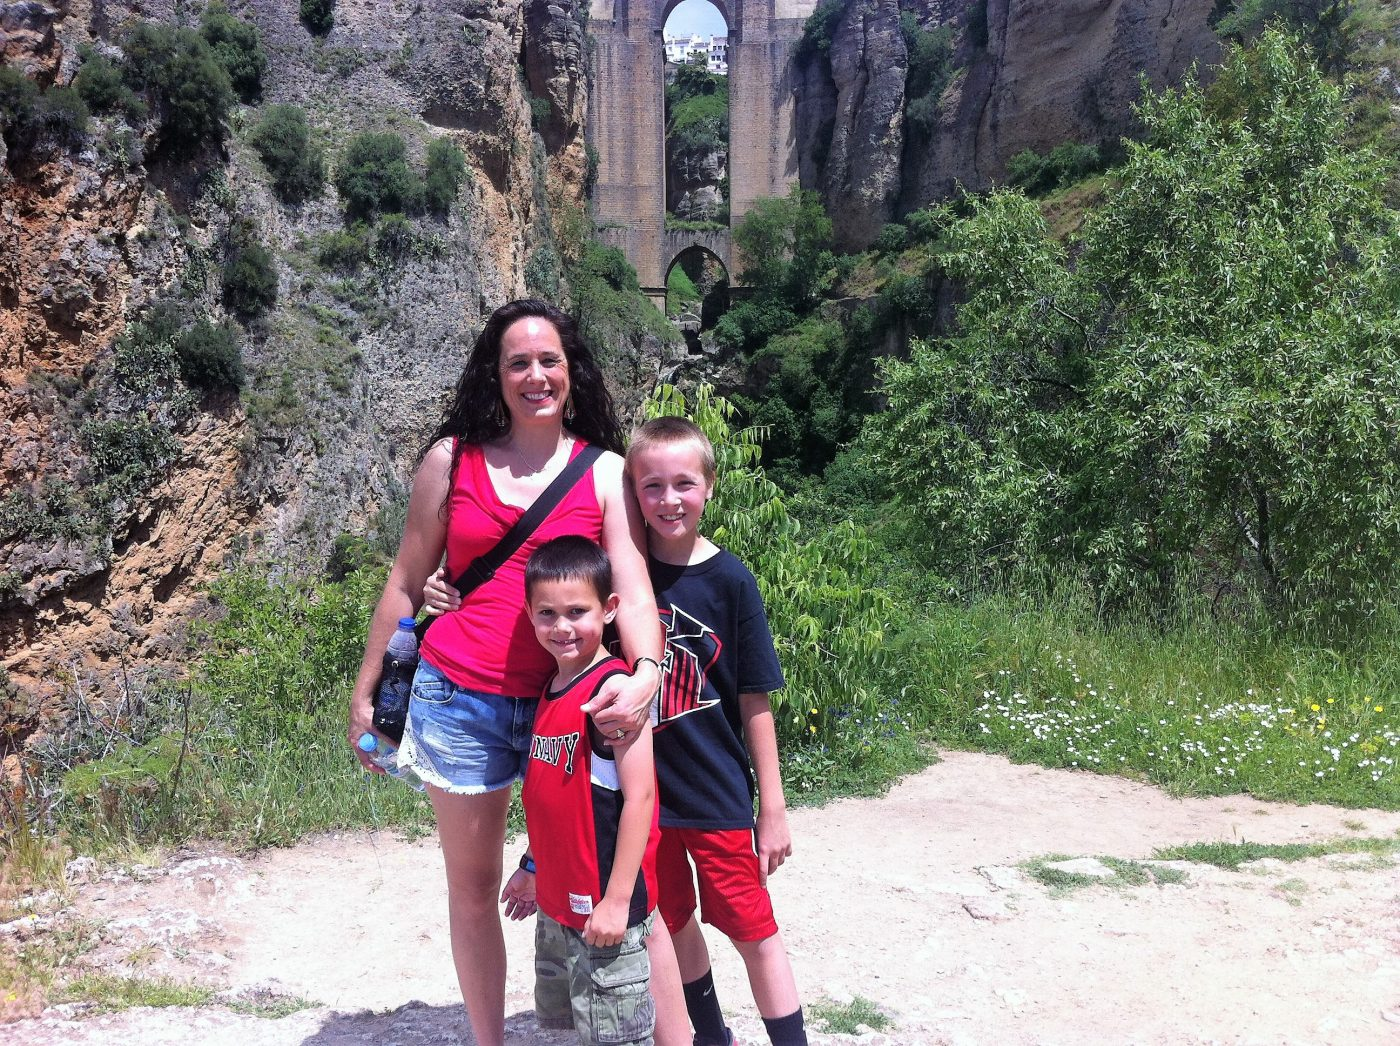 A visit to Ronda, Malaga and Nerja, Spain